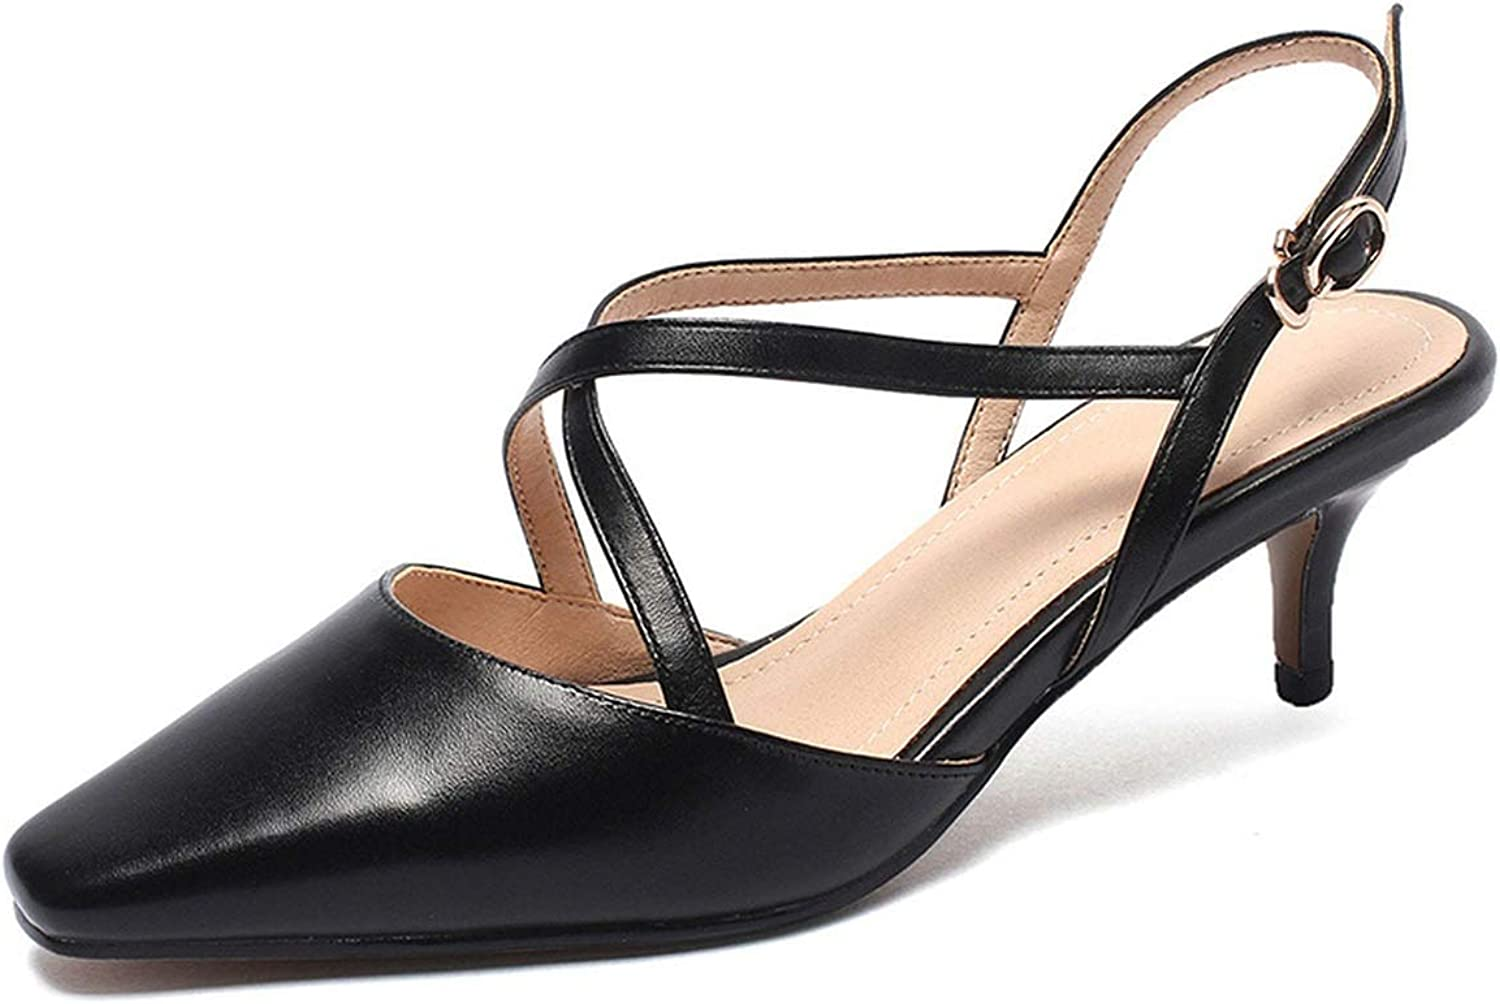 Easy-S-E-H Summer Leather Women Sandals High Thin Heel